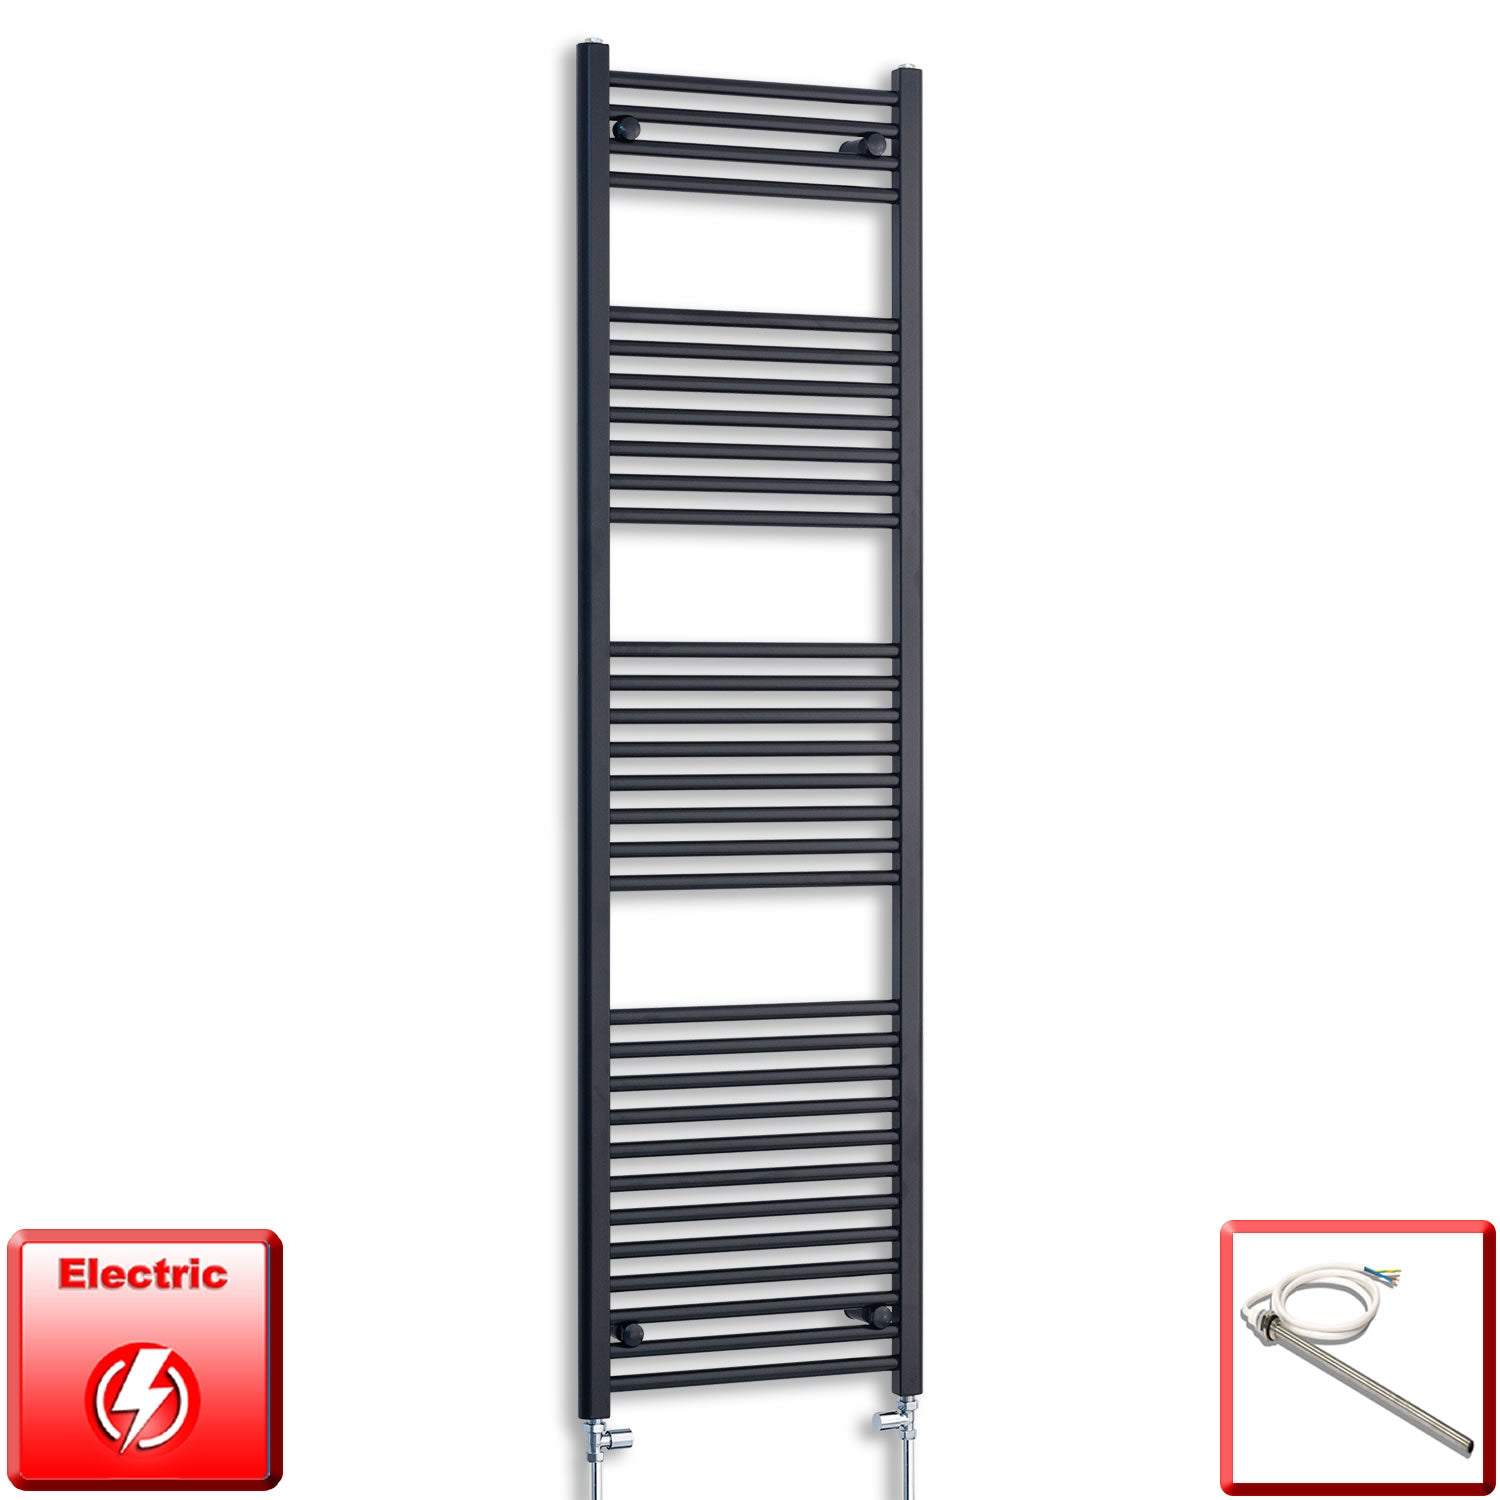 500mm Wide 1800mm High Pre-Filled Black Electric Towel Rail Radiator With Single Heat Element